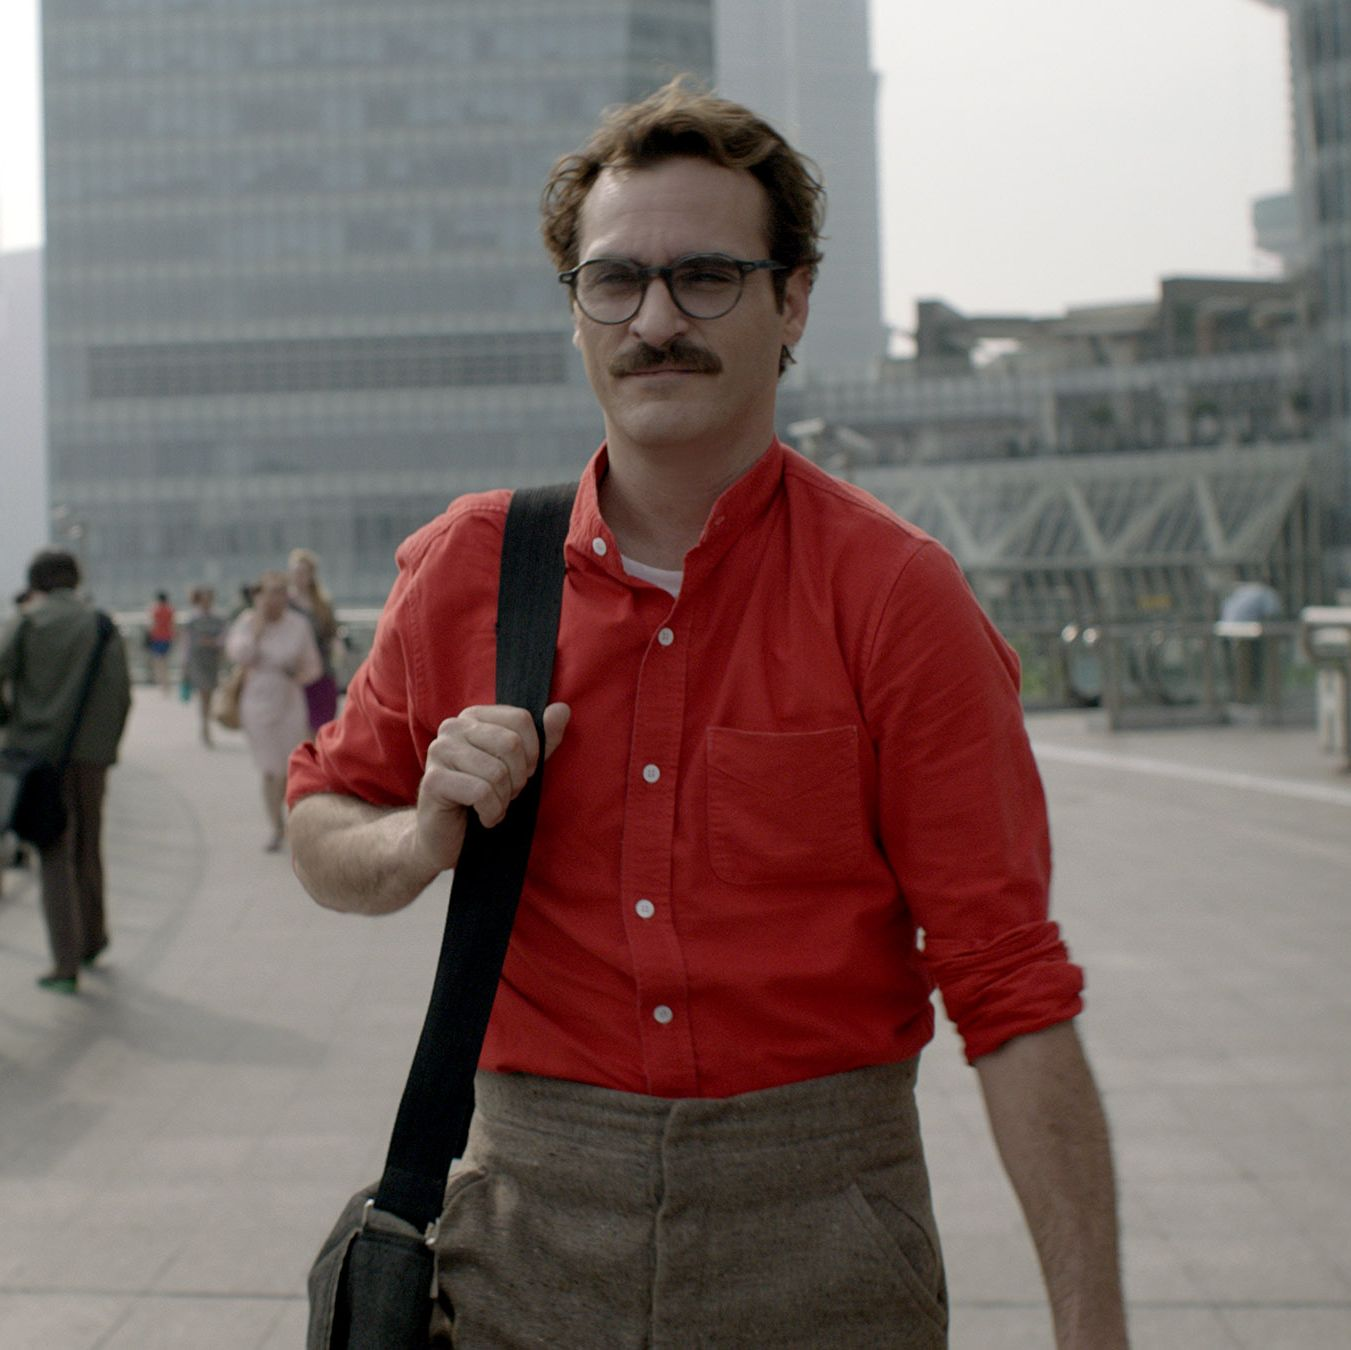 Her Writer-director Spike Jonze's futurist satire sees a lonely man (played by Joaquin Phoenix) falling in love with his AI assistant (voiced by Scarlett Johansson).